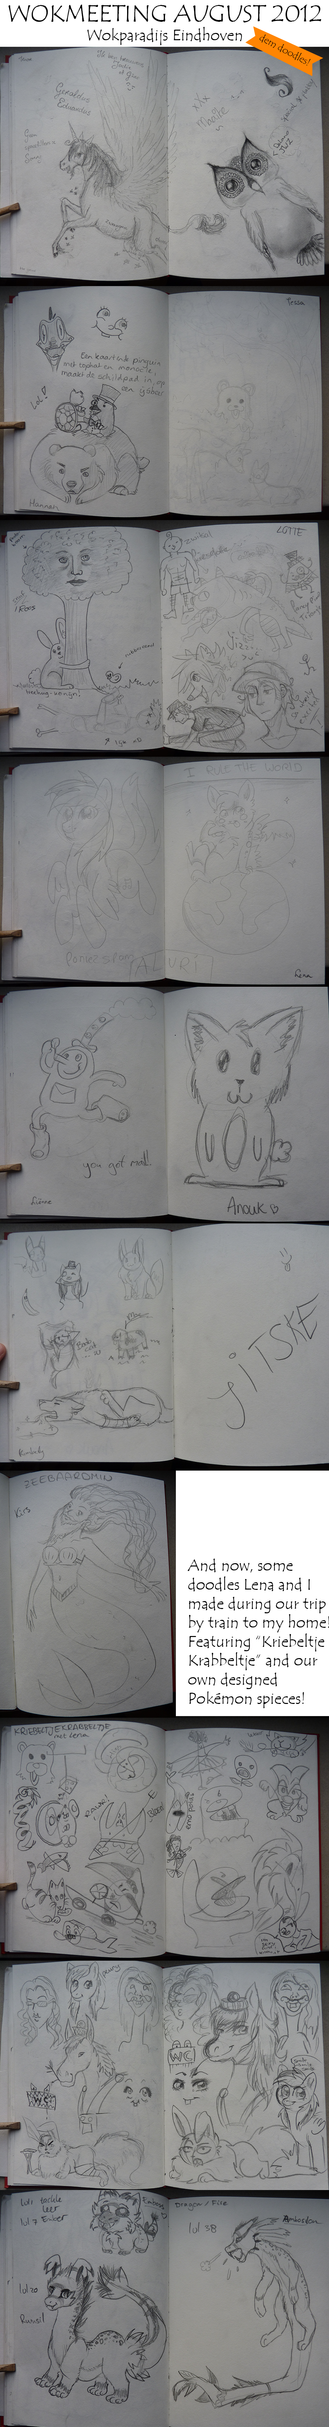 Wokmeeting August 2012 Doodles! by Kiruel